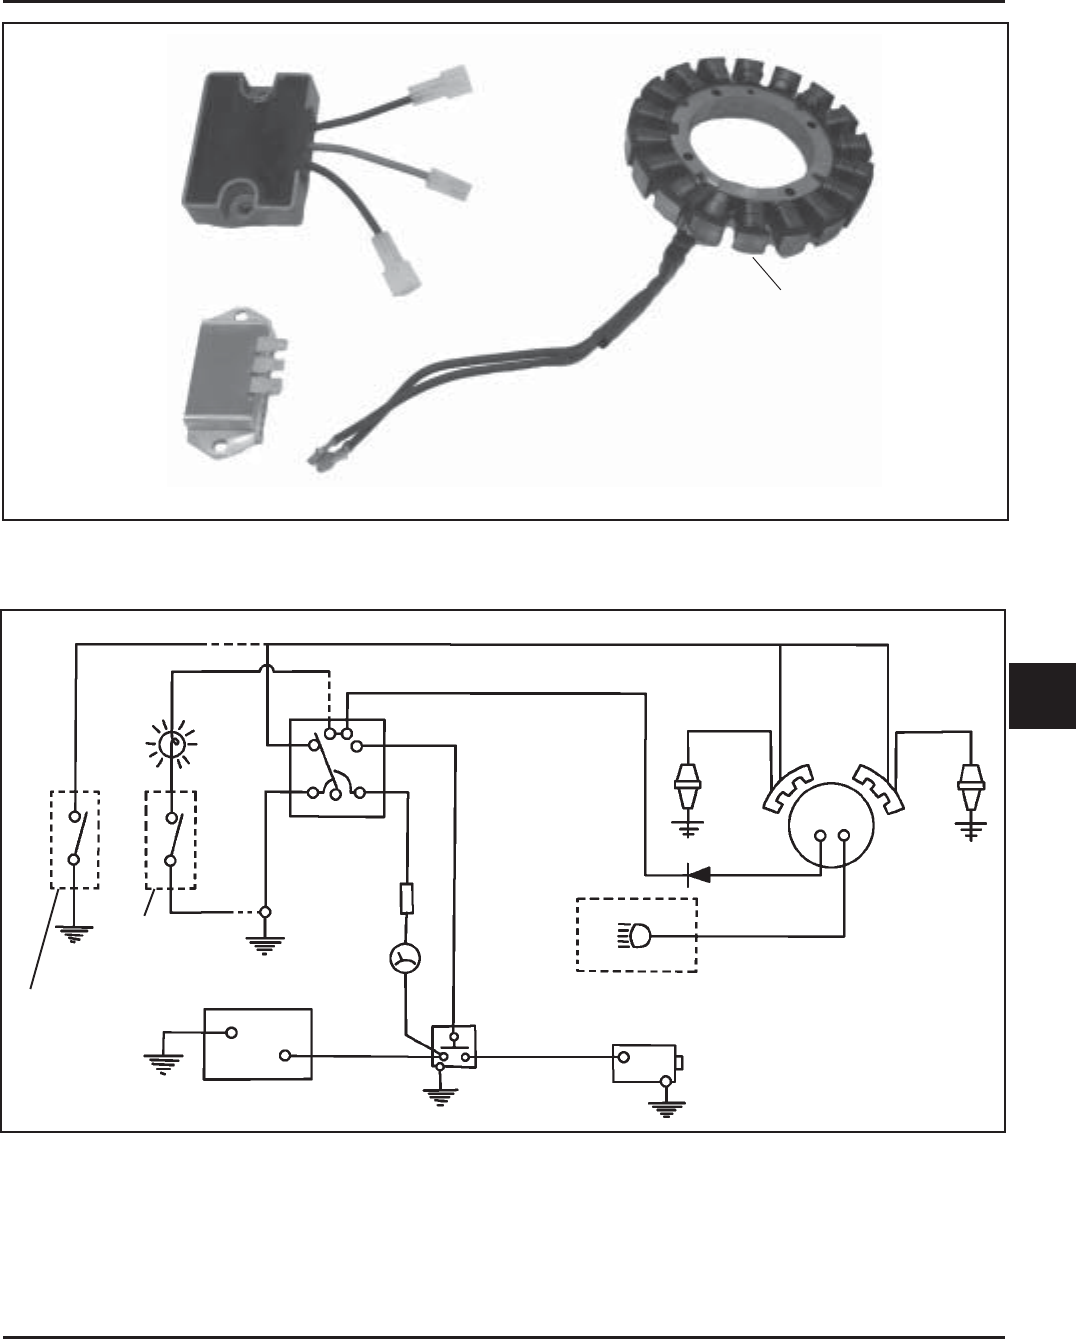 kohler rv generator wiring diagram kohler image kohler wiring diagram generator wiring diagram and hernes on kohler rv generator wiring diagram